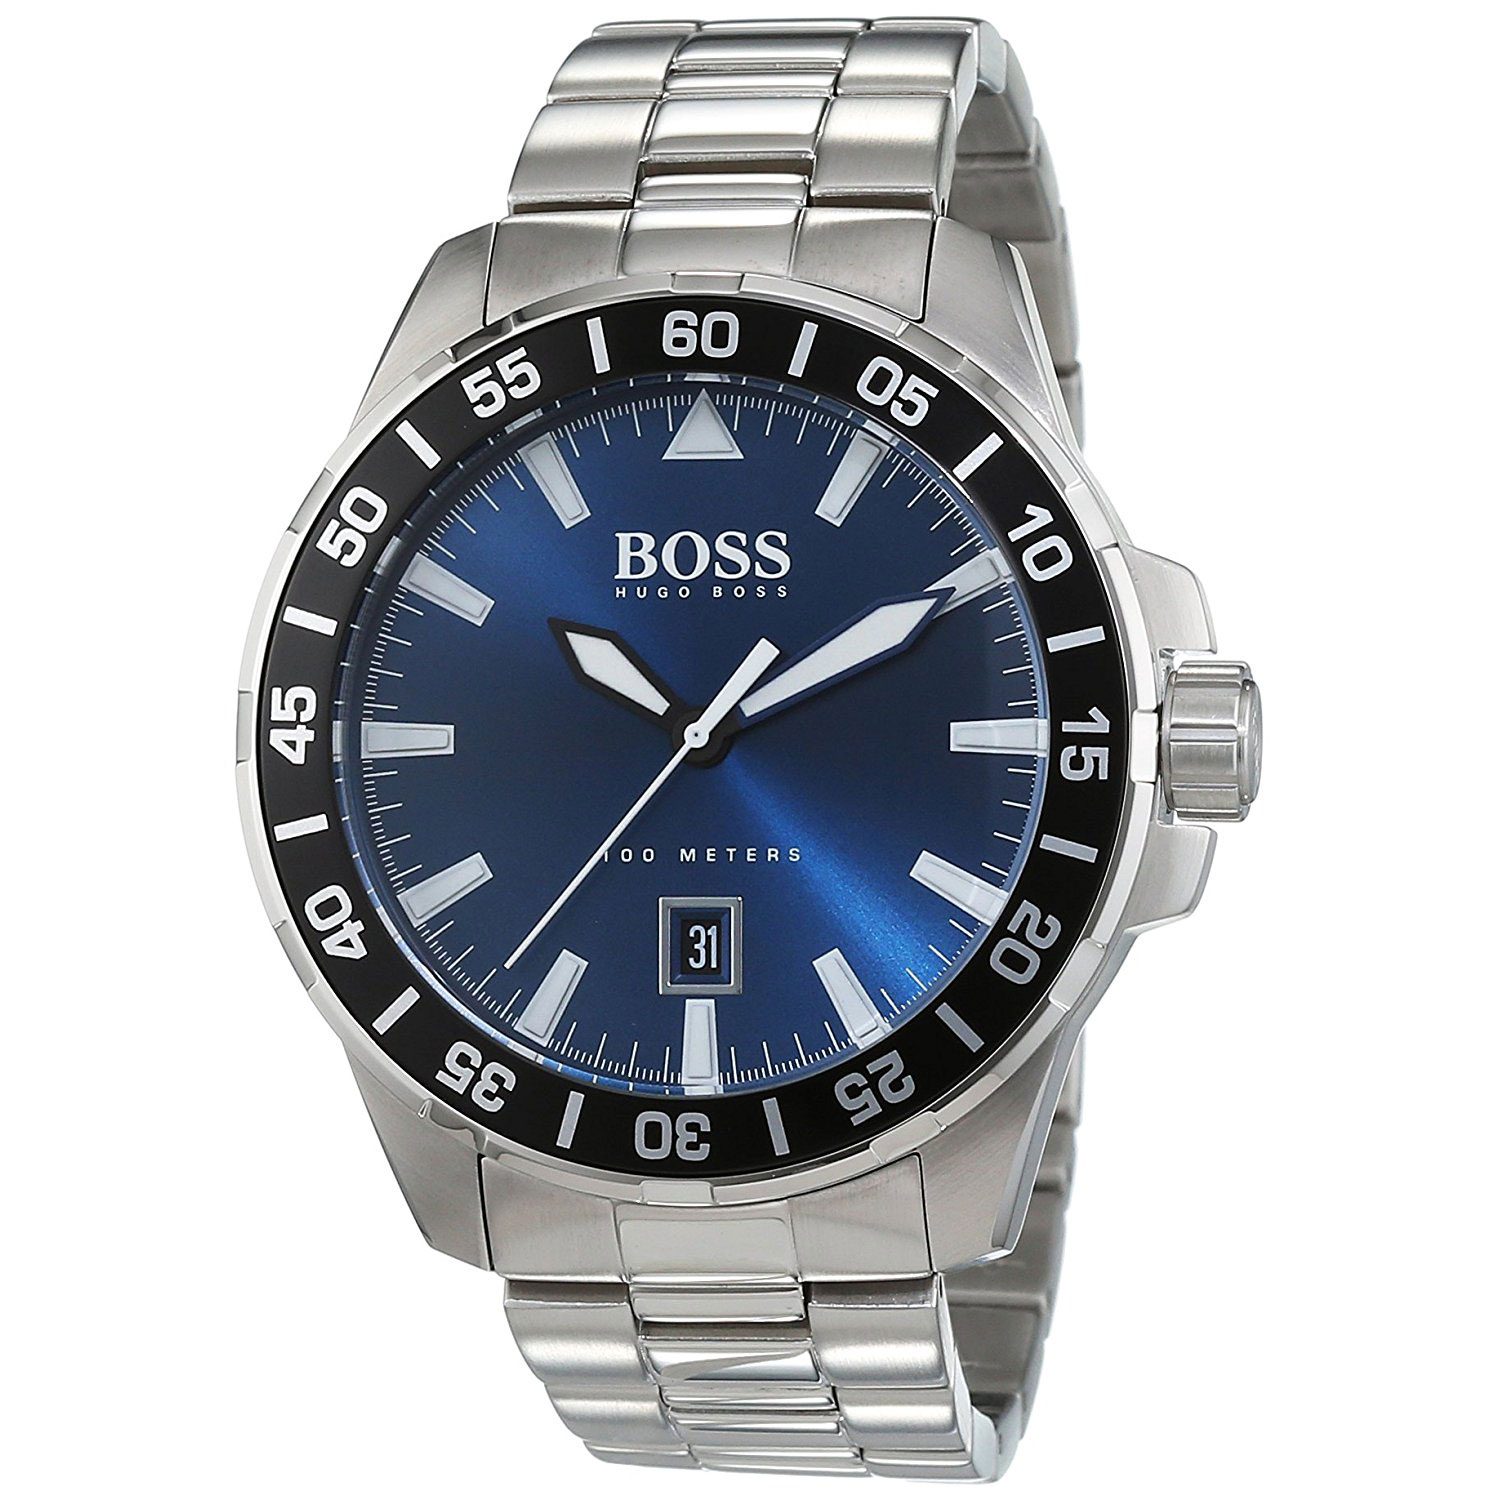 Good Watch Brands For Men >> Hugo Boss Watch with stainless steel 1513230